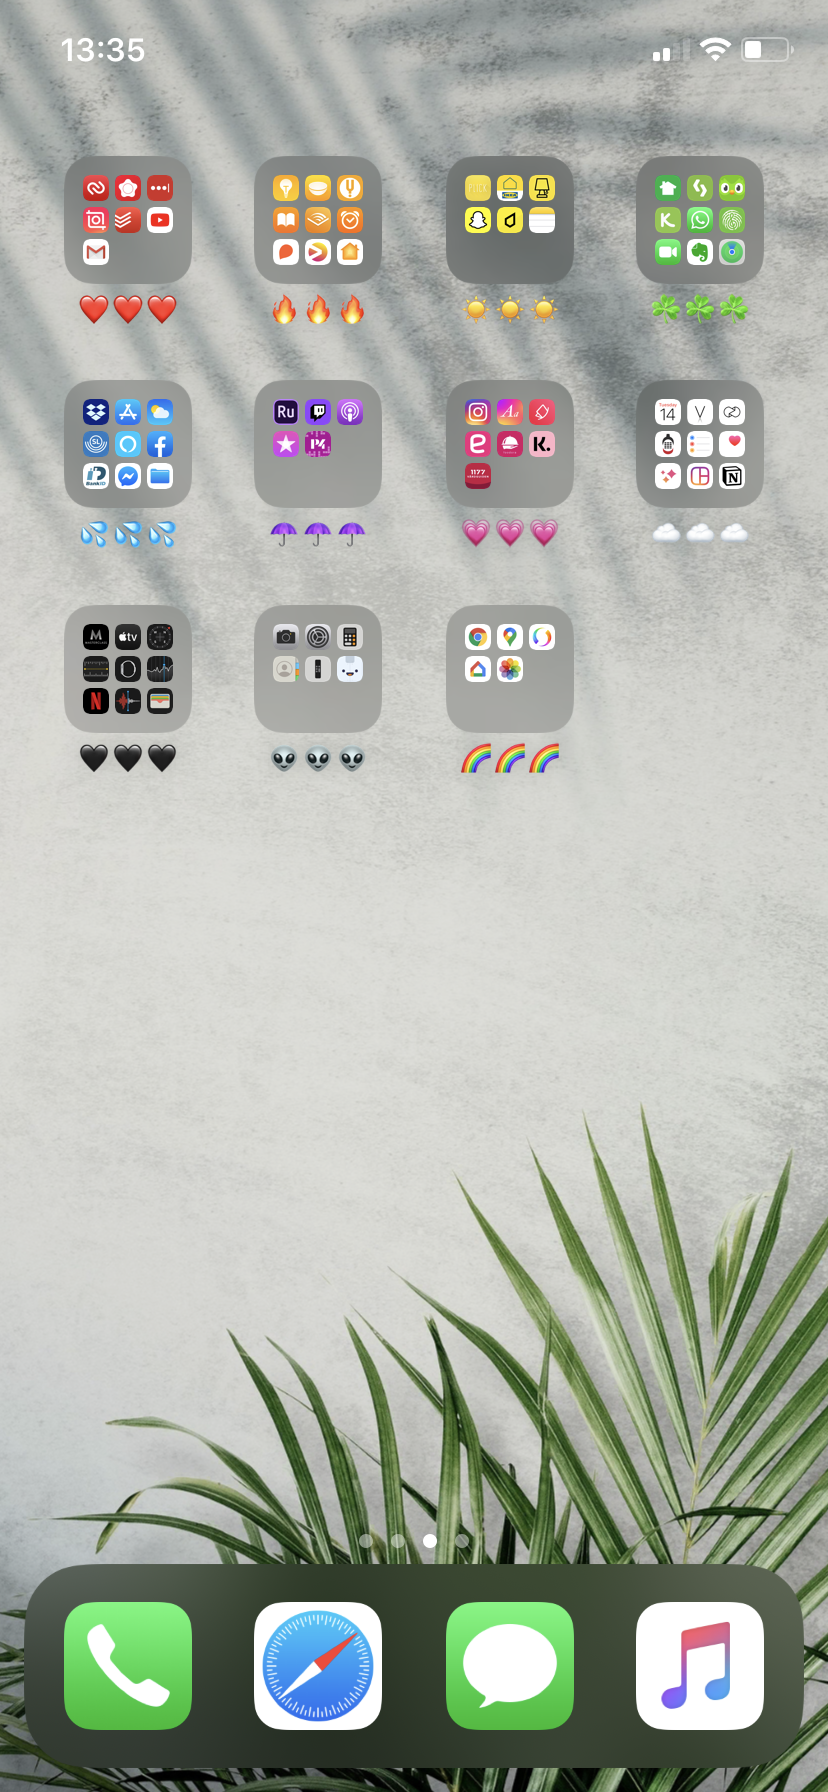 How to Organize iPhone Apps Aesthetically by Color